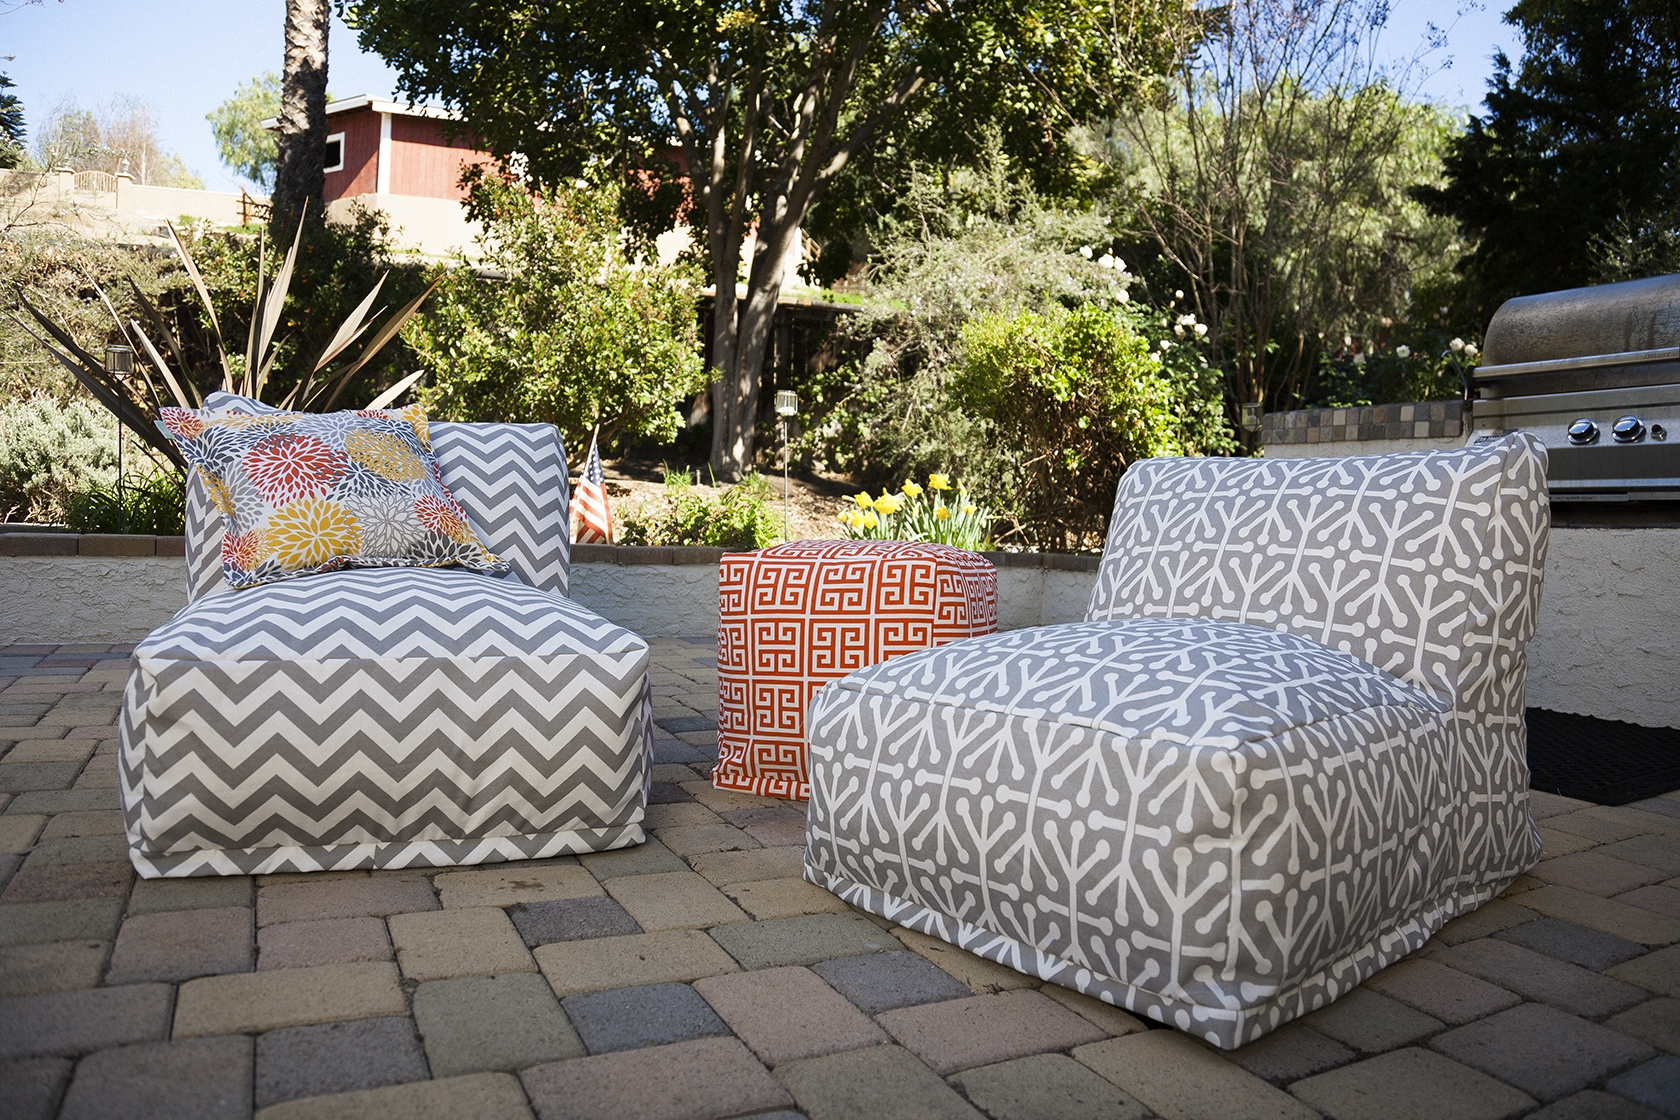 How To Get The Most Of Outdoor Bean Bag Chairs For S